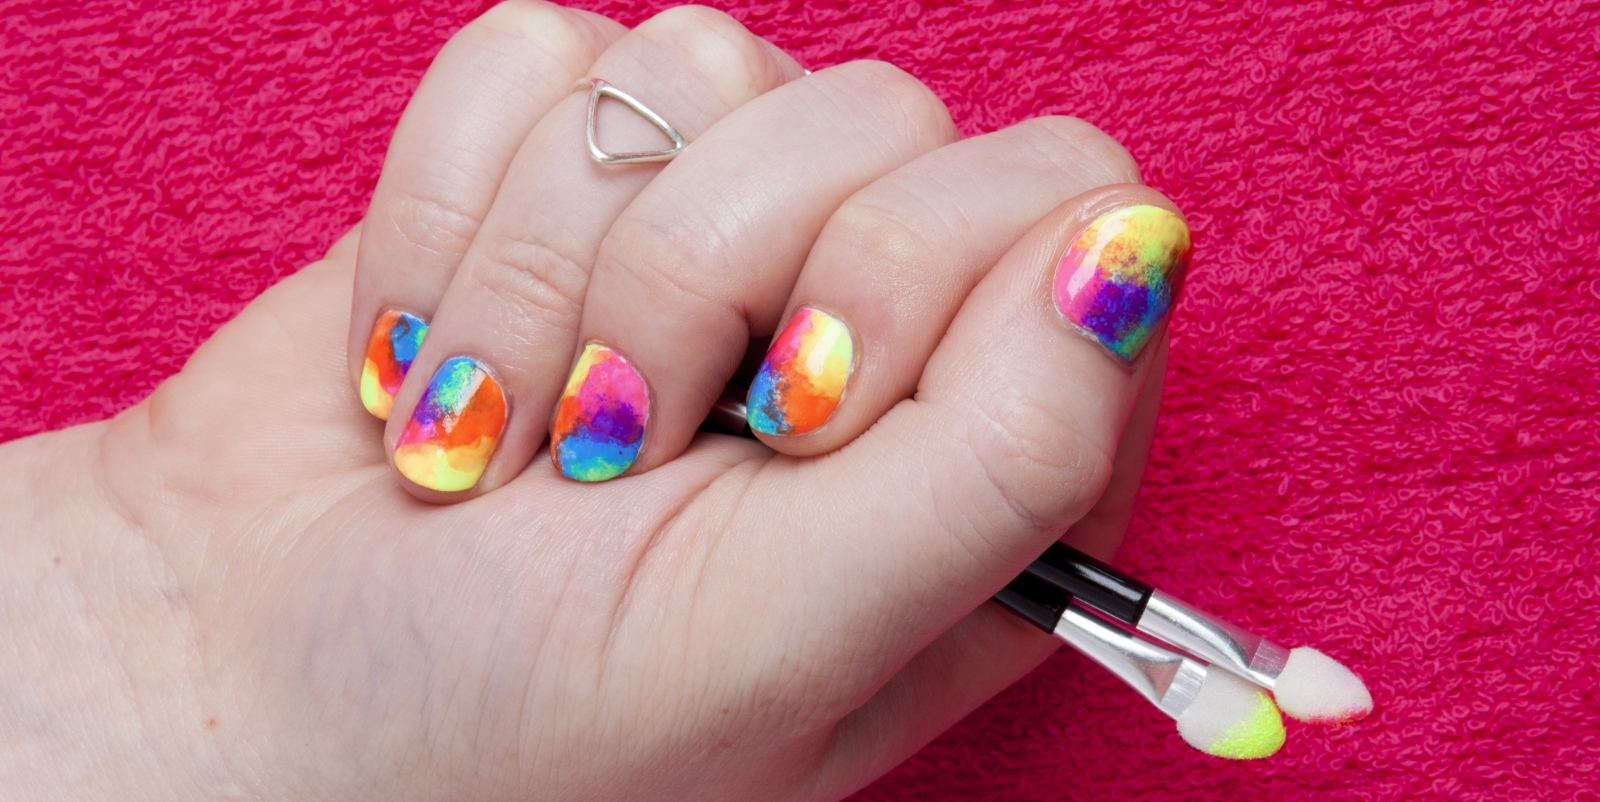 5 easy nail designs beautify themselves with sweet nails diy nail art rainbow tie dye in five easy steps prinsesfo Images